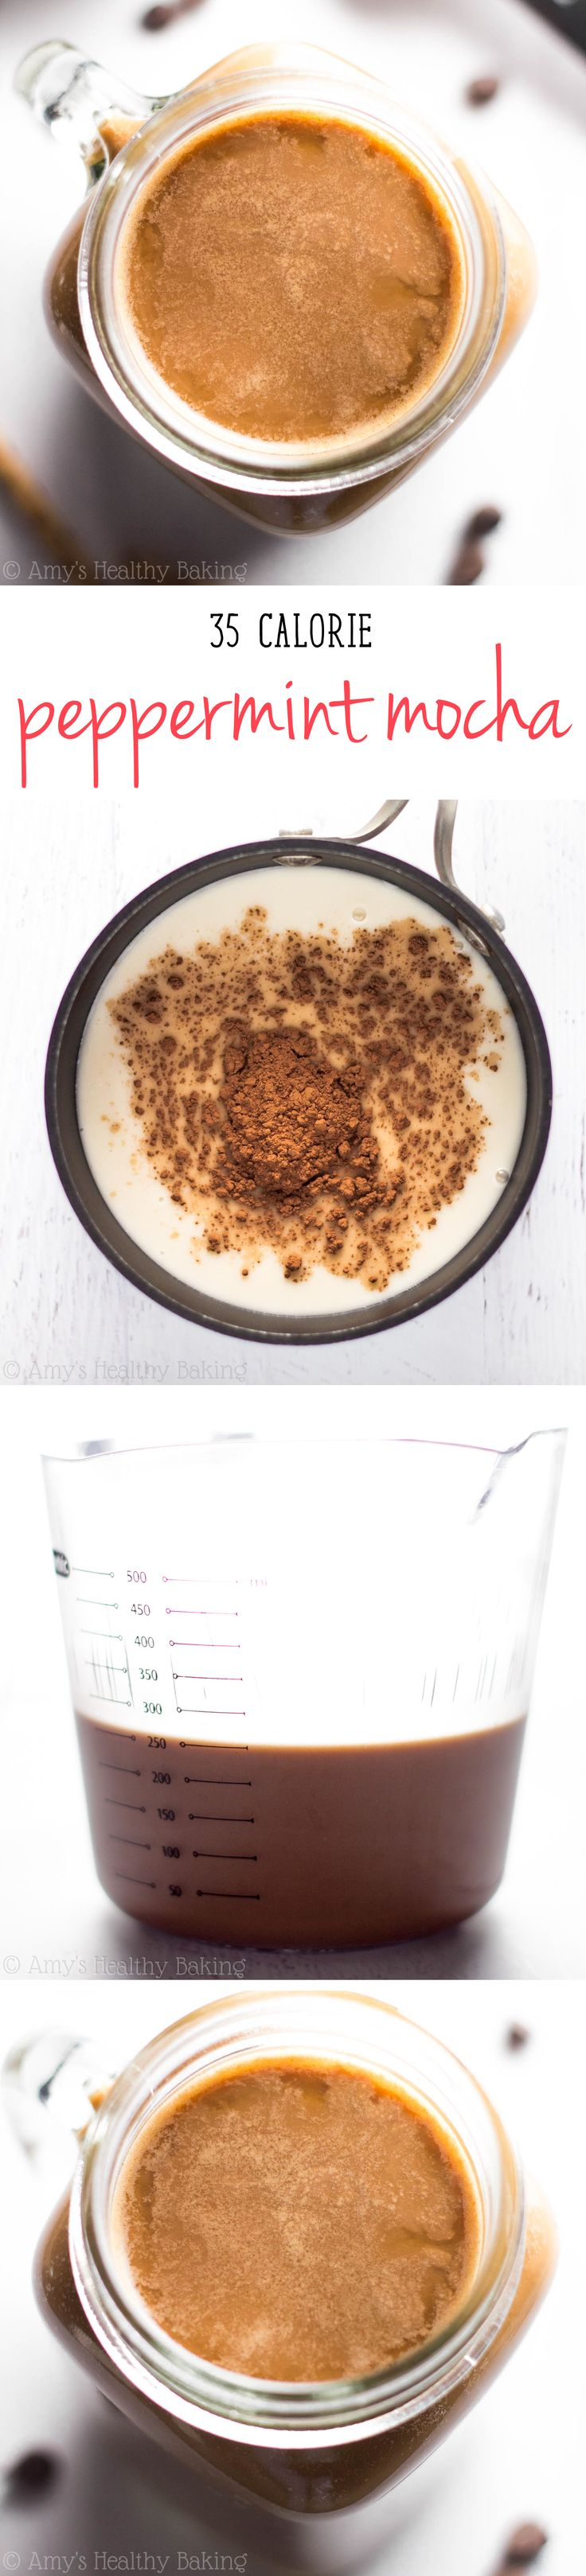 Skip the coffee shop & make this skinny mocha at home for a fraction of the price! My family BEGS for this during the holidays, thanks to one creamy (and healthy!) secret ingredient!